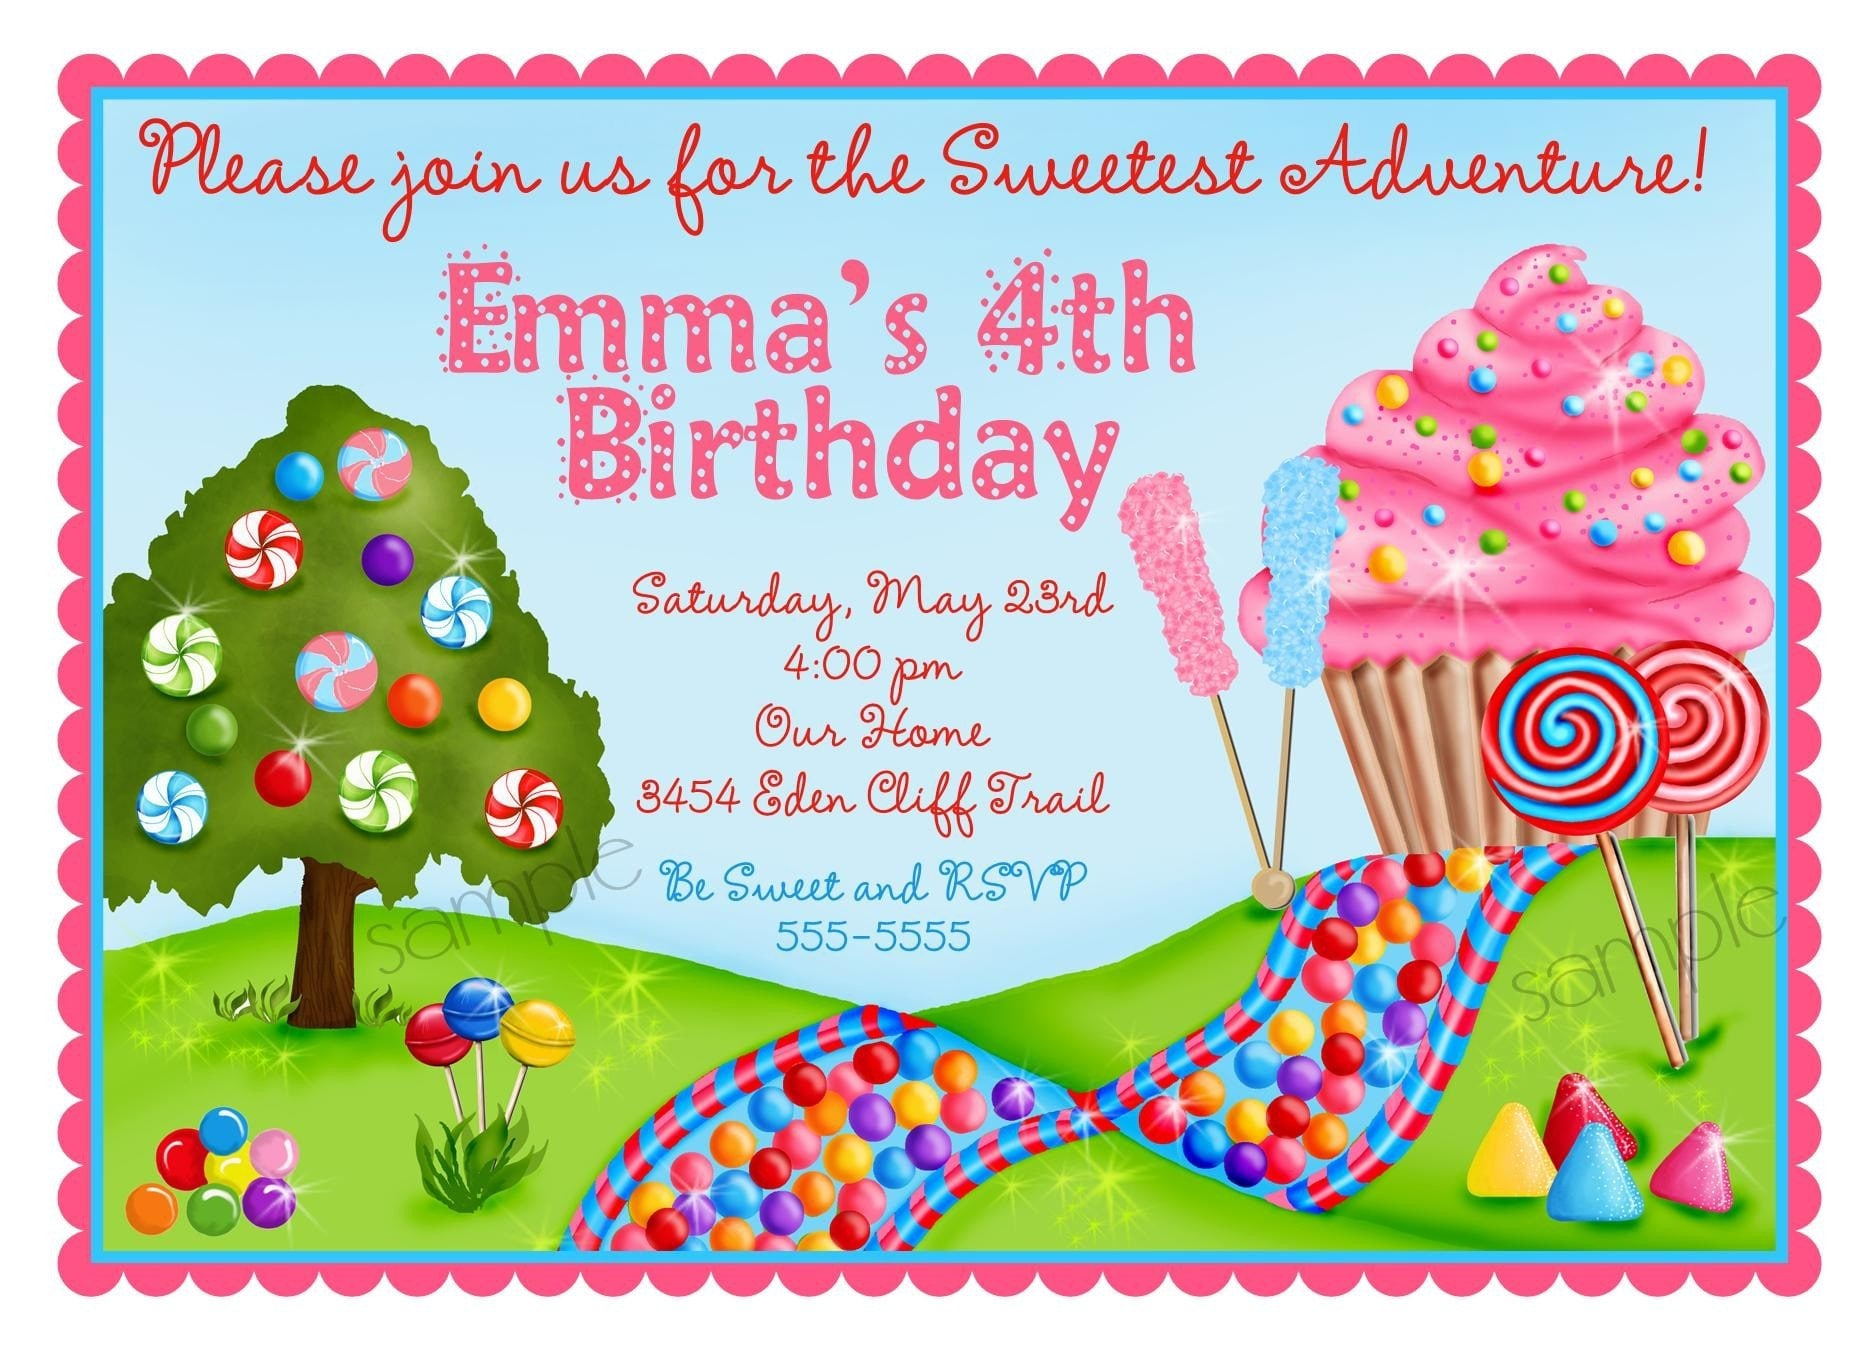 Candyland Party Invitations could be nice ideas for your invitation template